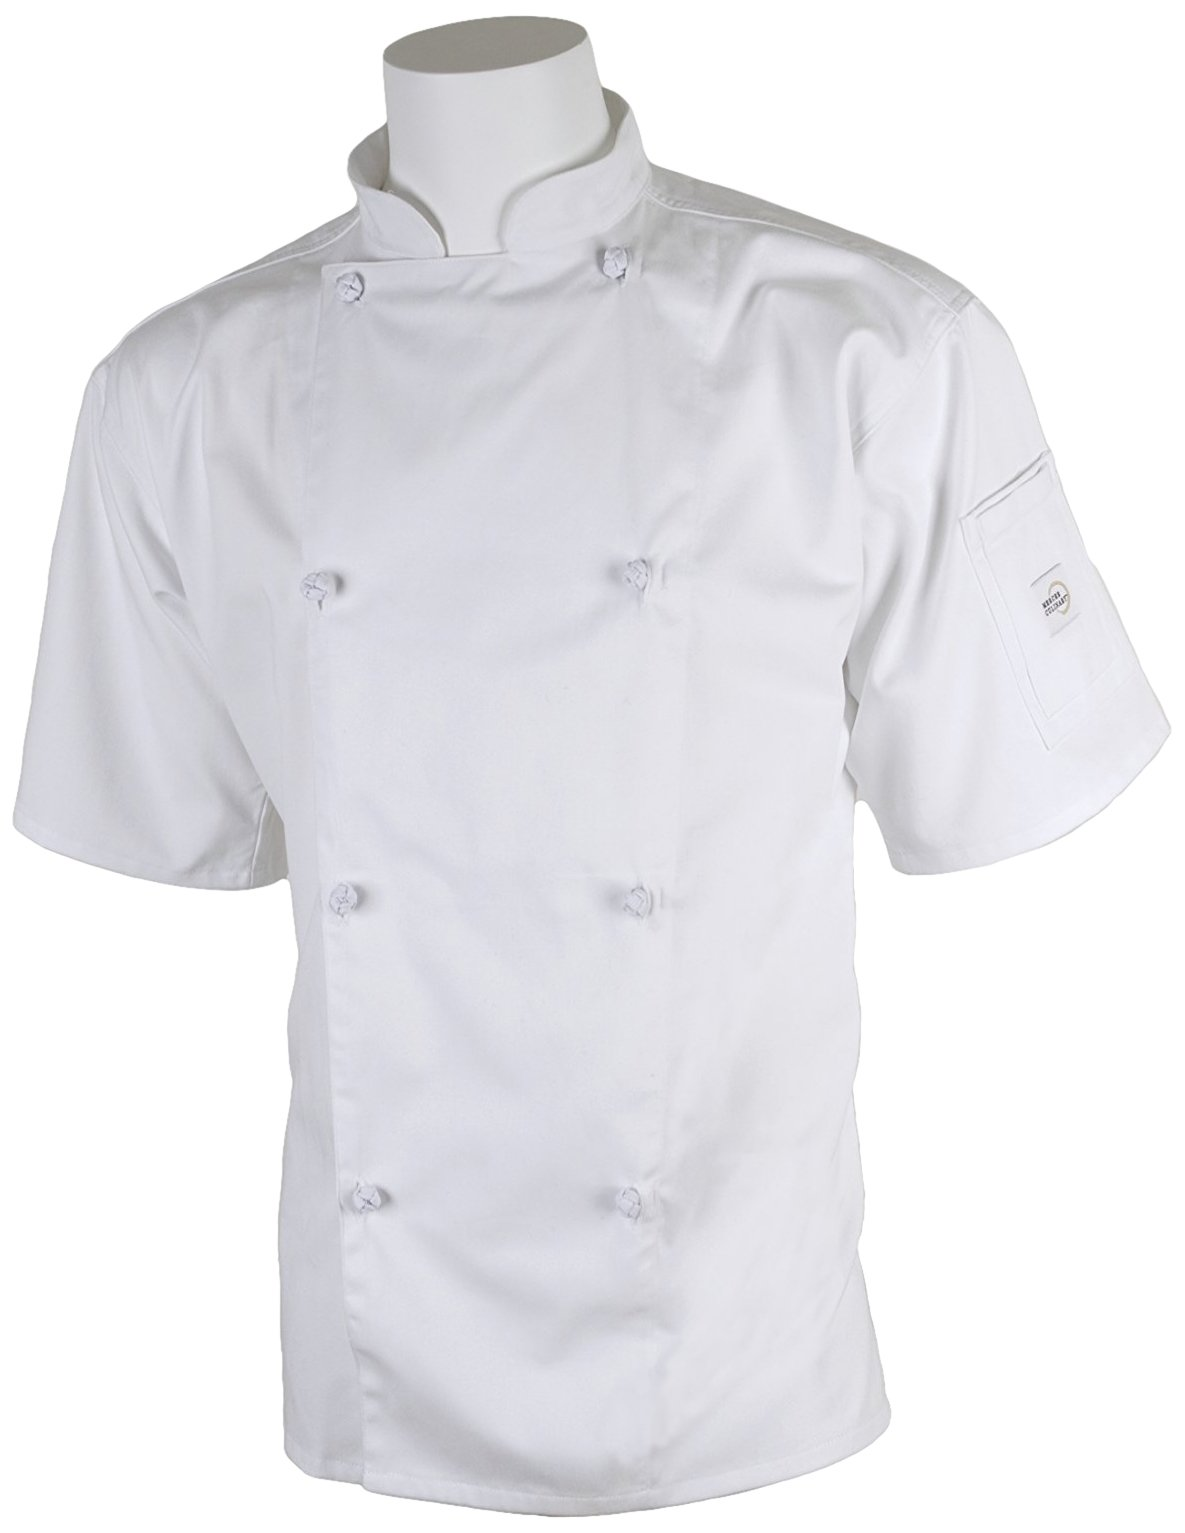 Mercer Culinary M61022WHXS Genesis Men's Short Sleeve Chef Jacket with Cloth Knot Buttons, X-Small, White by Mercer Culinary